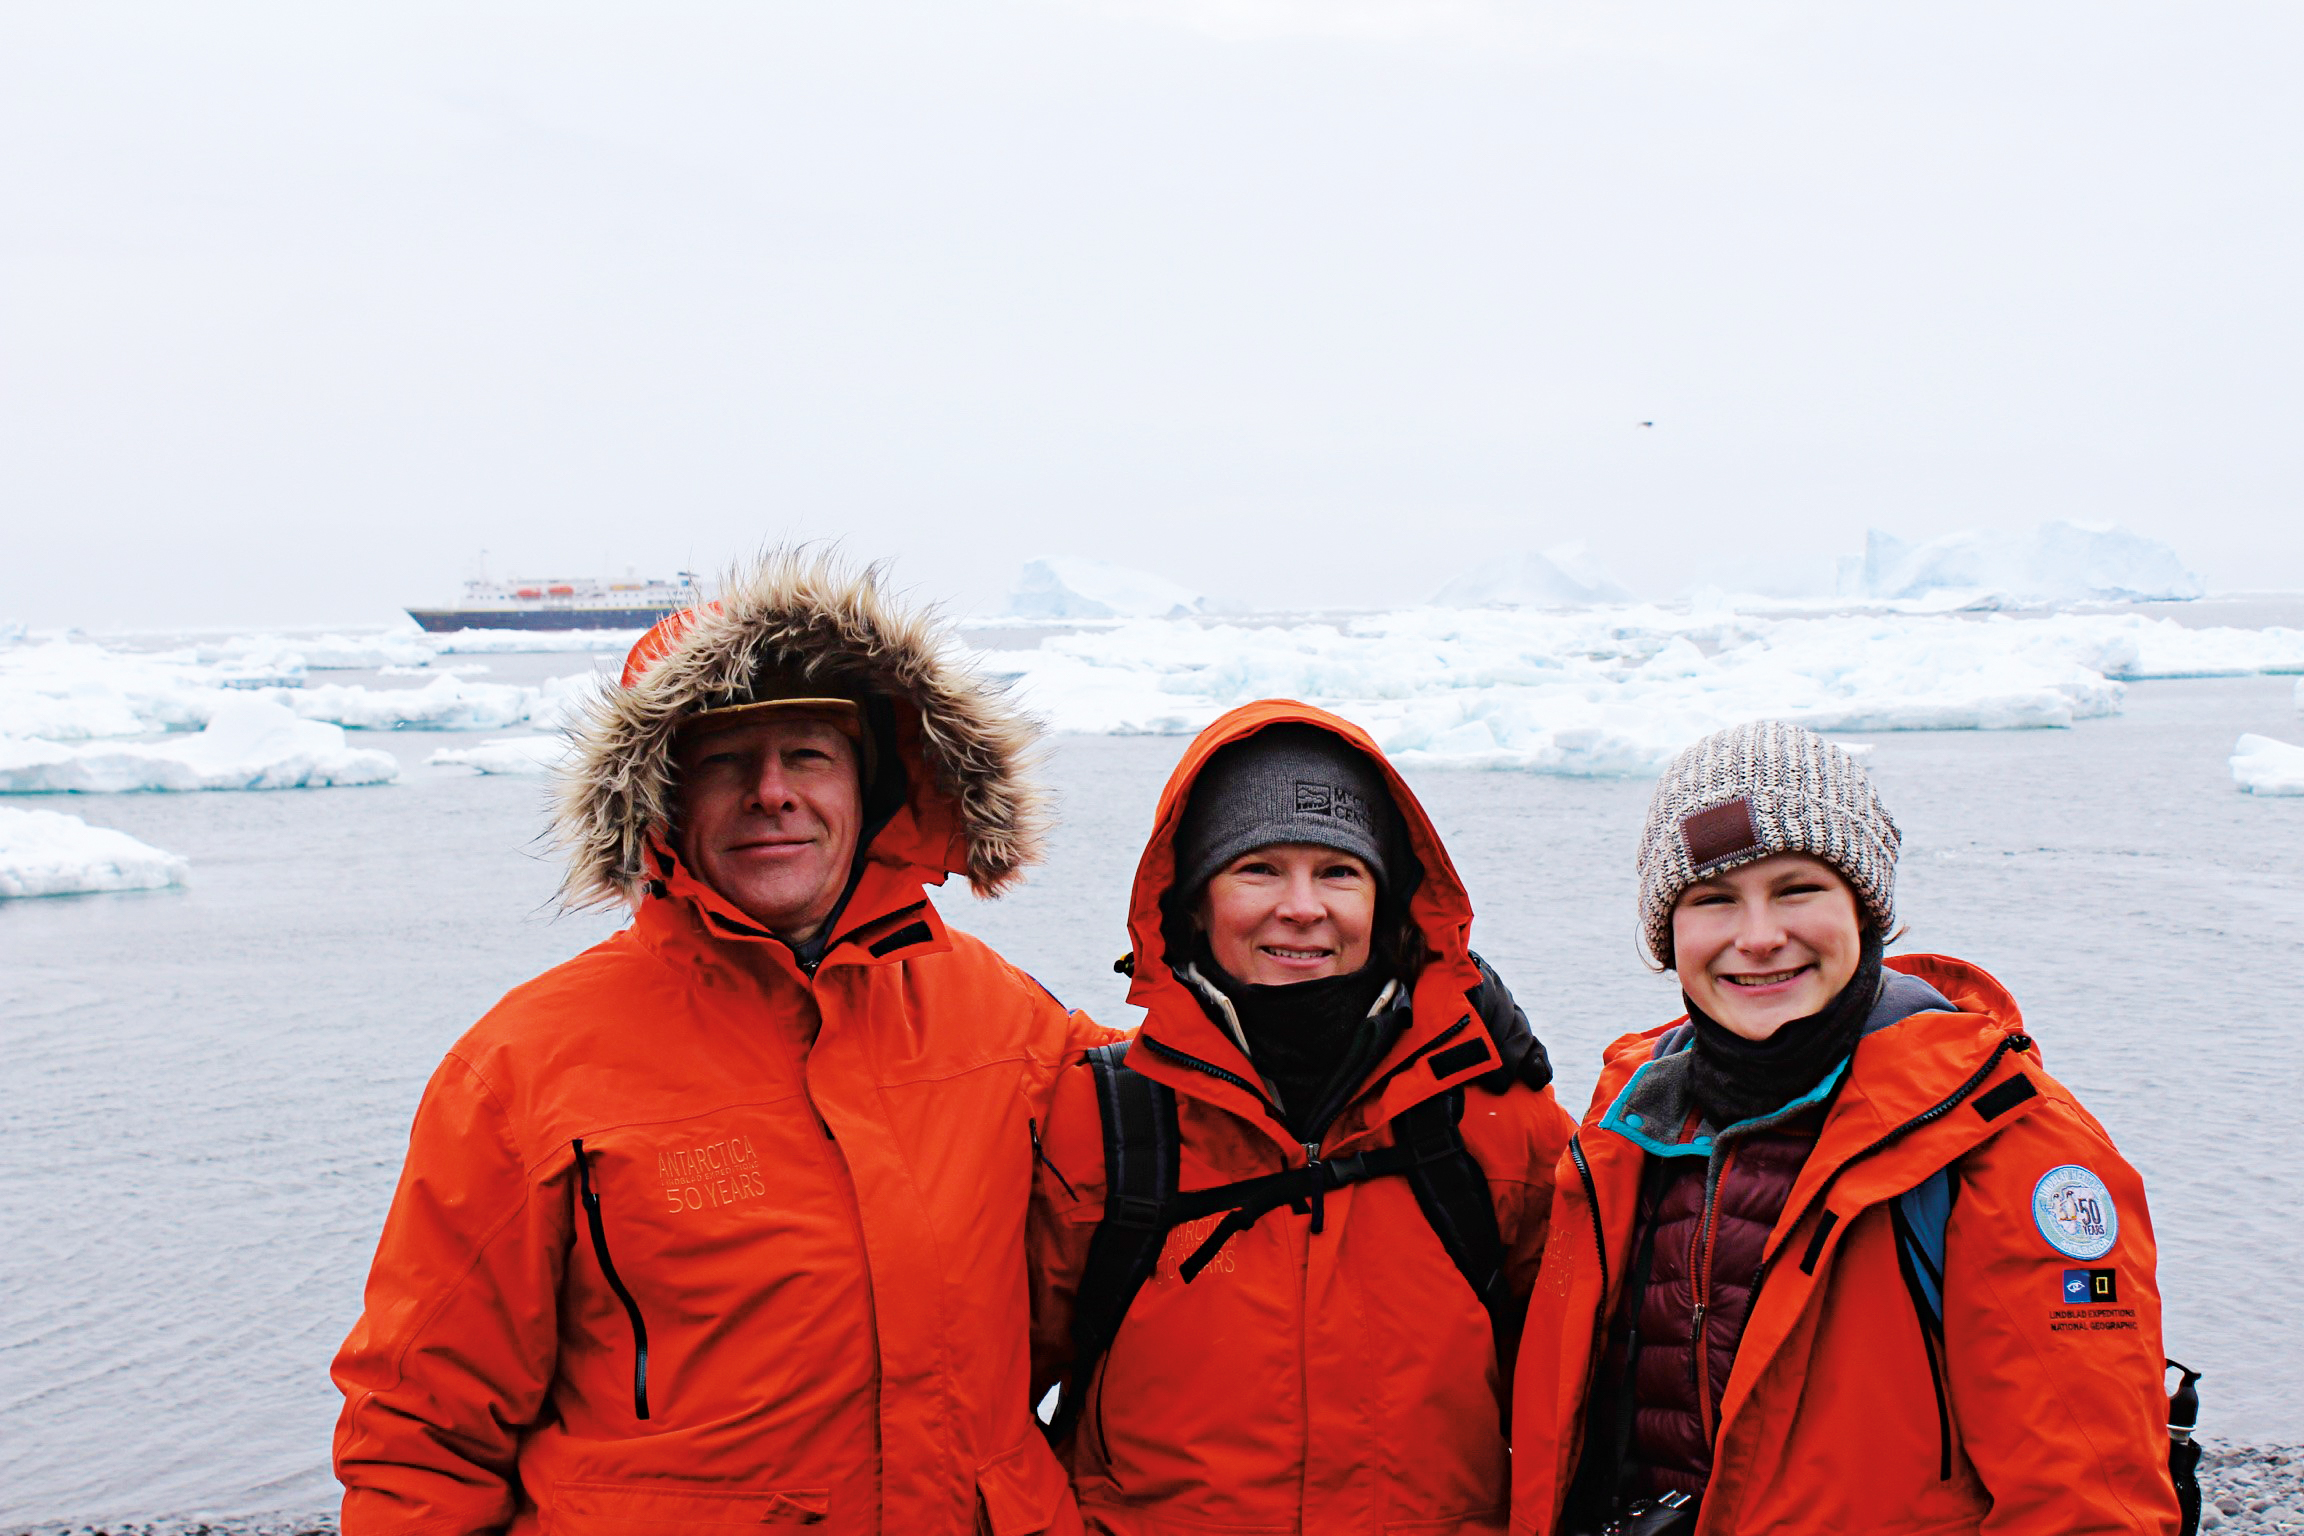 Andrew Rose '78, with wife Ann and daughter Louisa, celebrated Christmas in Antarctica, along with numerous penguins.